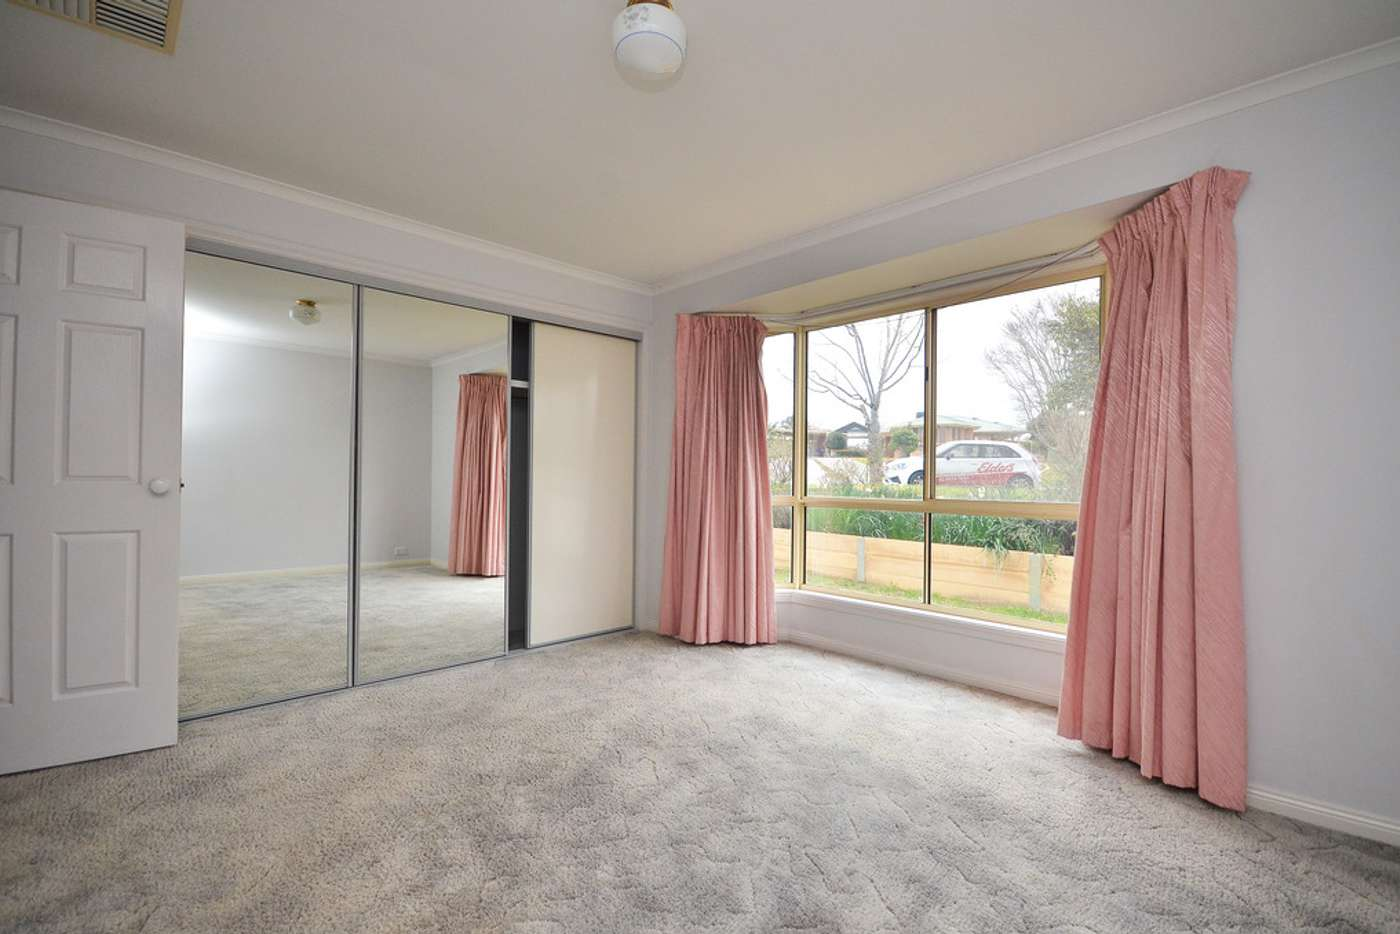 Sixth view of Homely house listing, 2 Canary Court, Wodonga VIC 3690